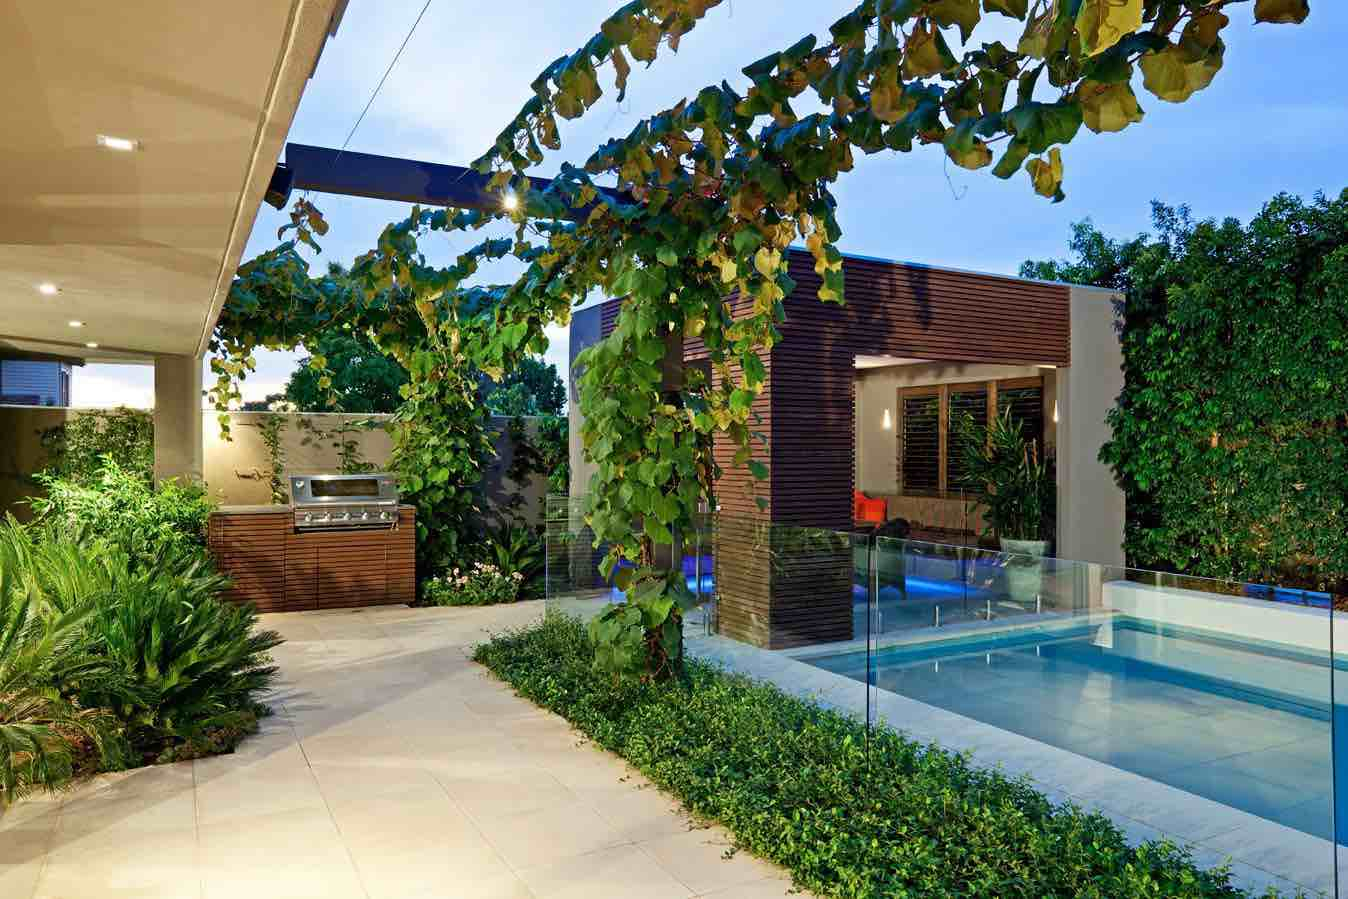 small backyard home design idea - Backyard Design Ideas